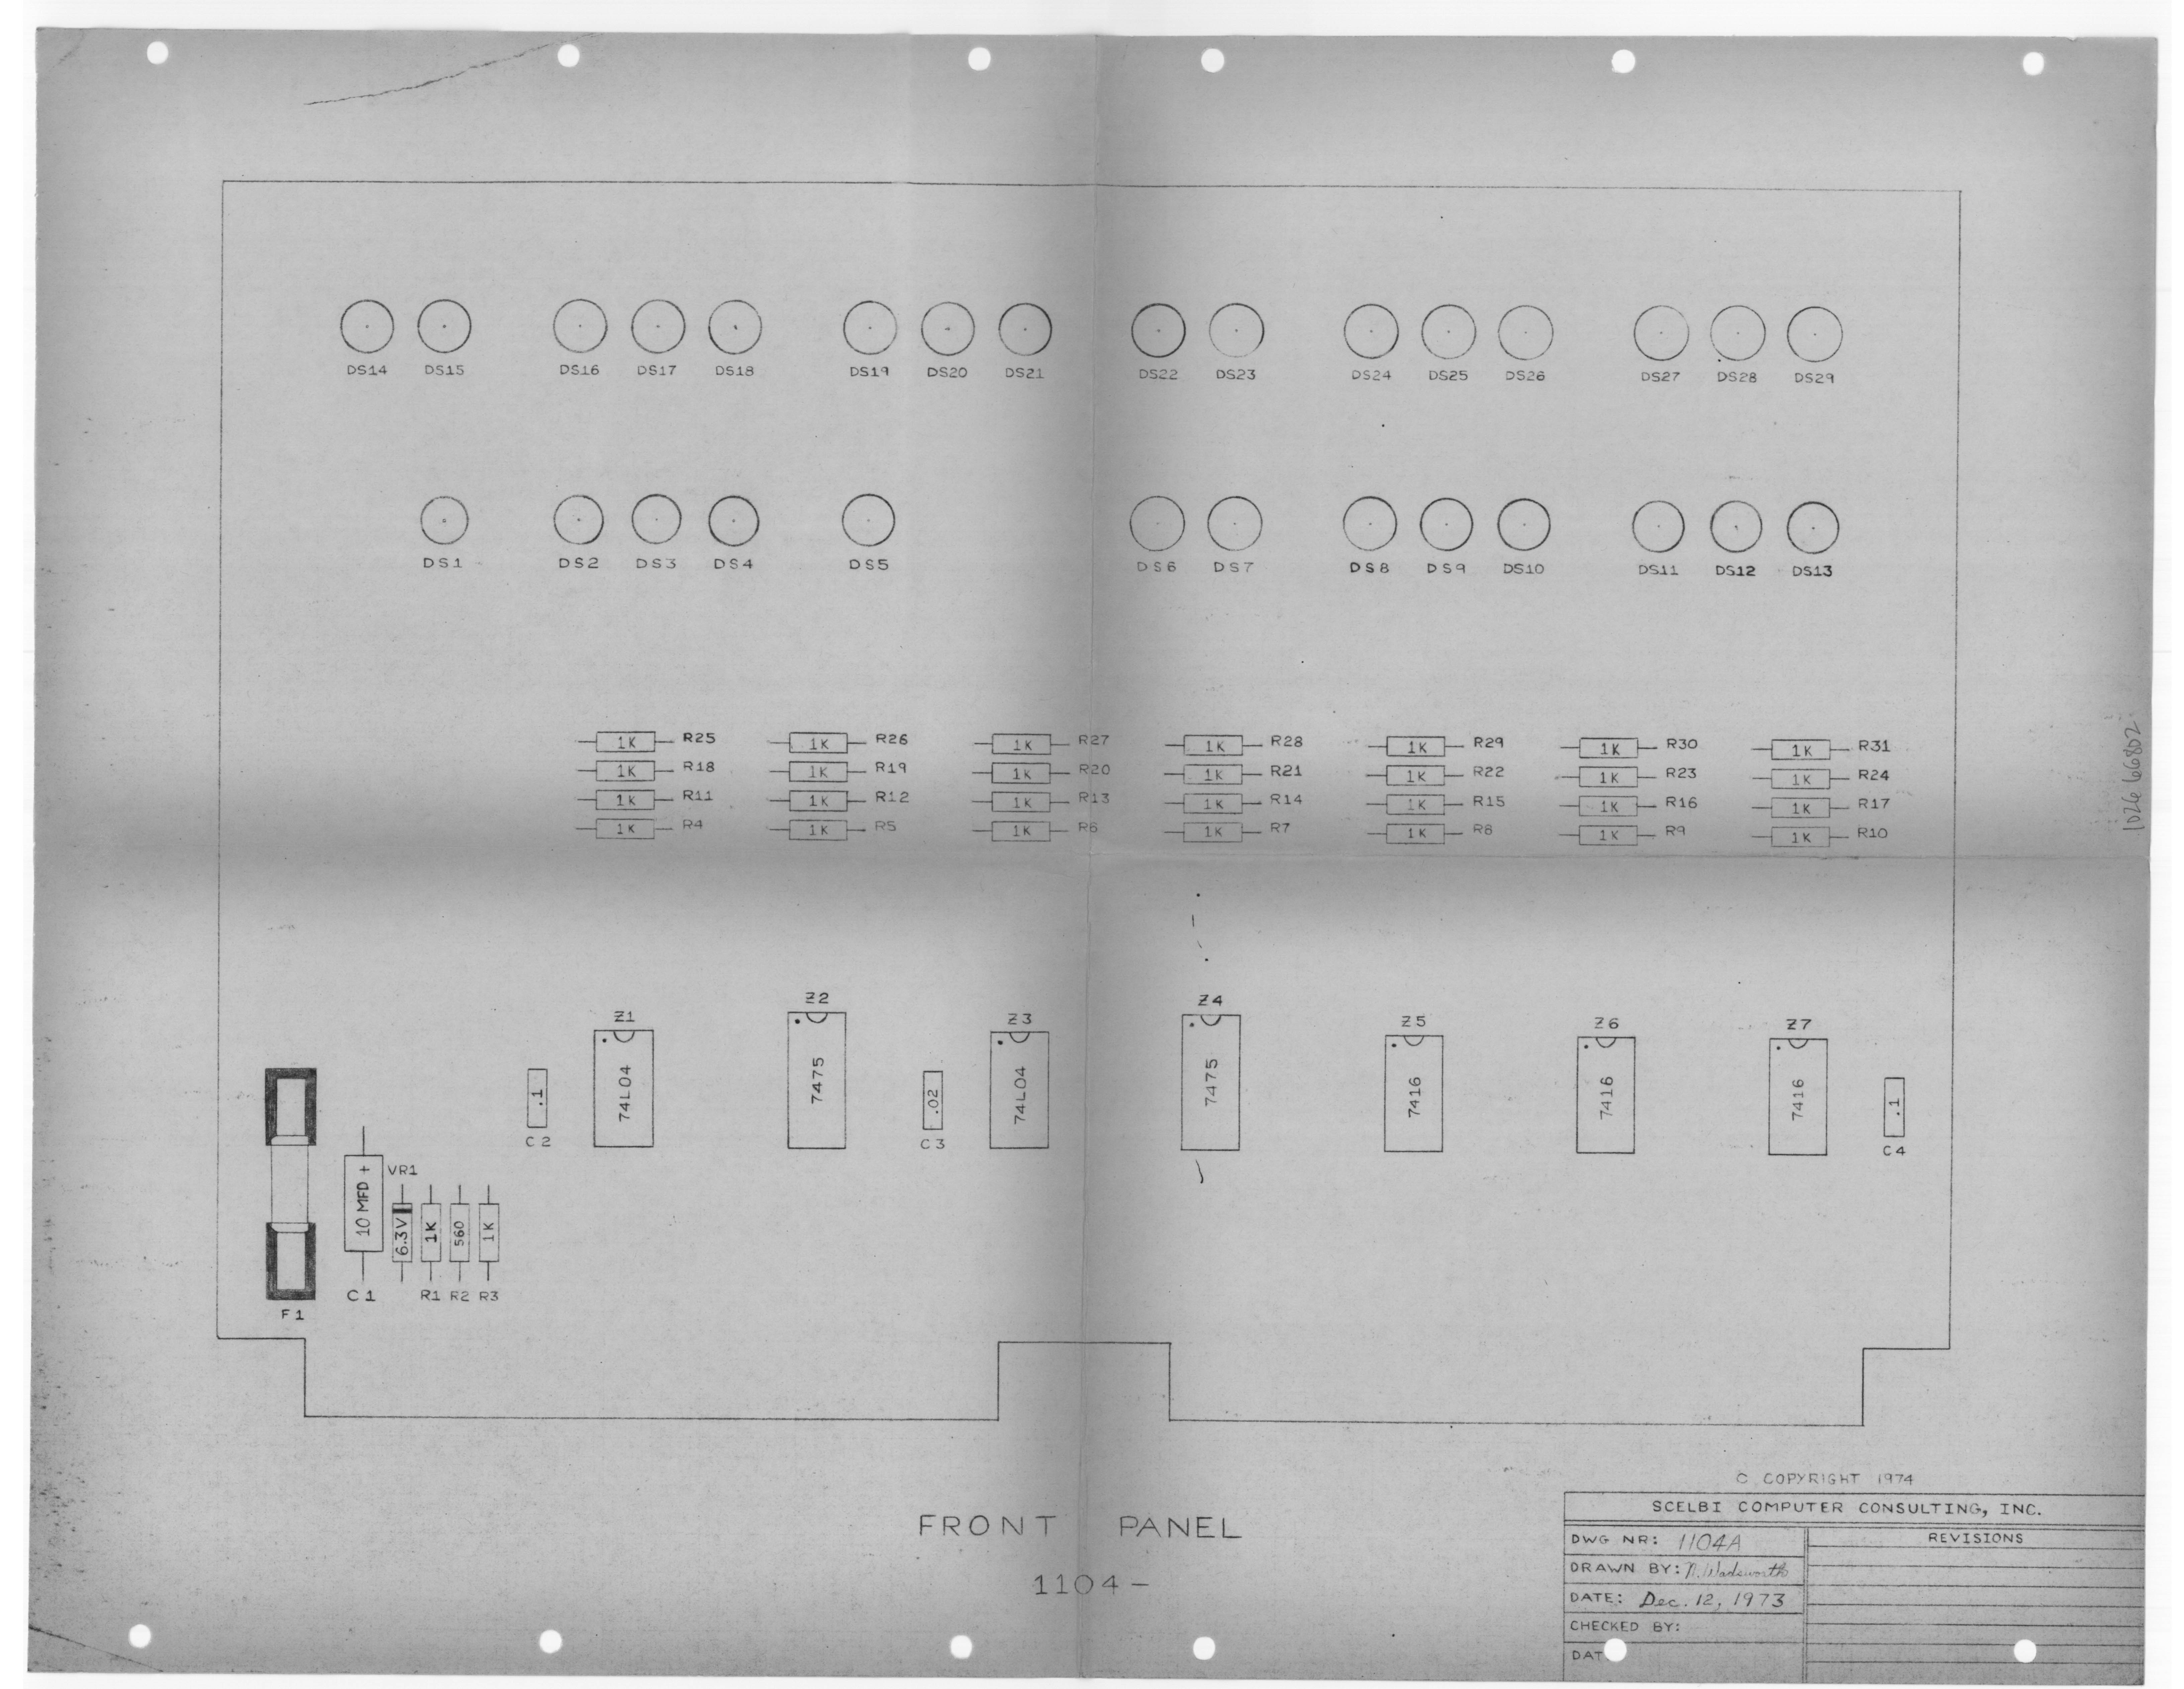 Scelbi Computer Museum Documentation Panel Board Schematic Front Layout